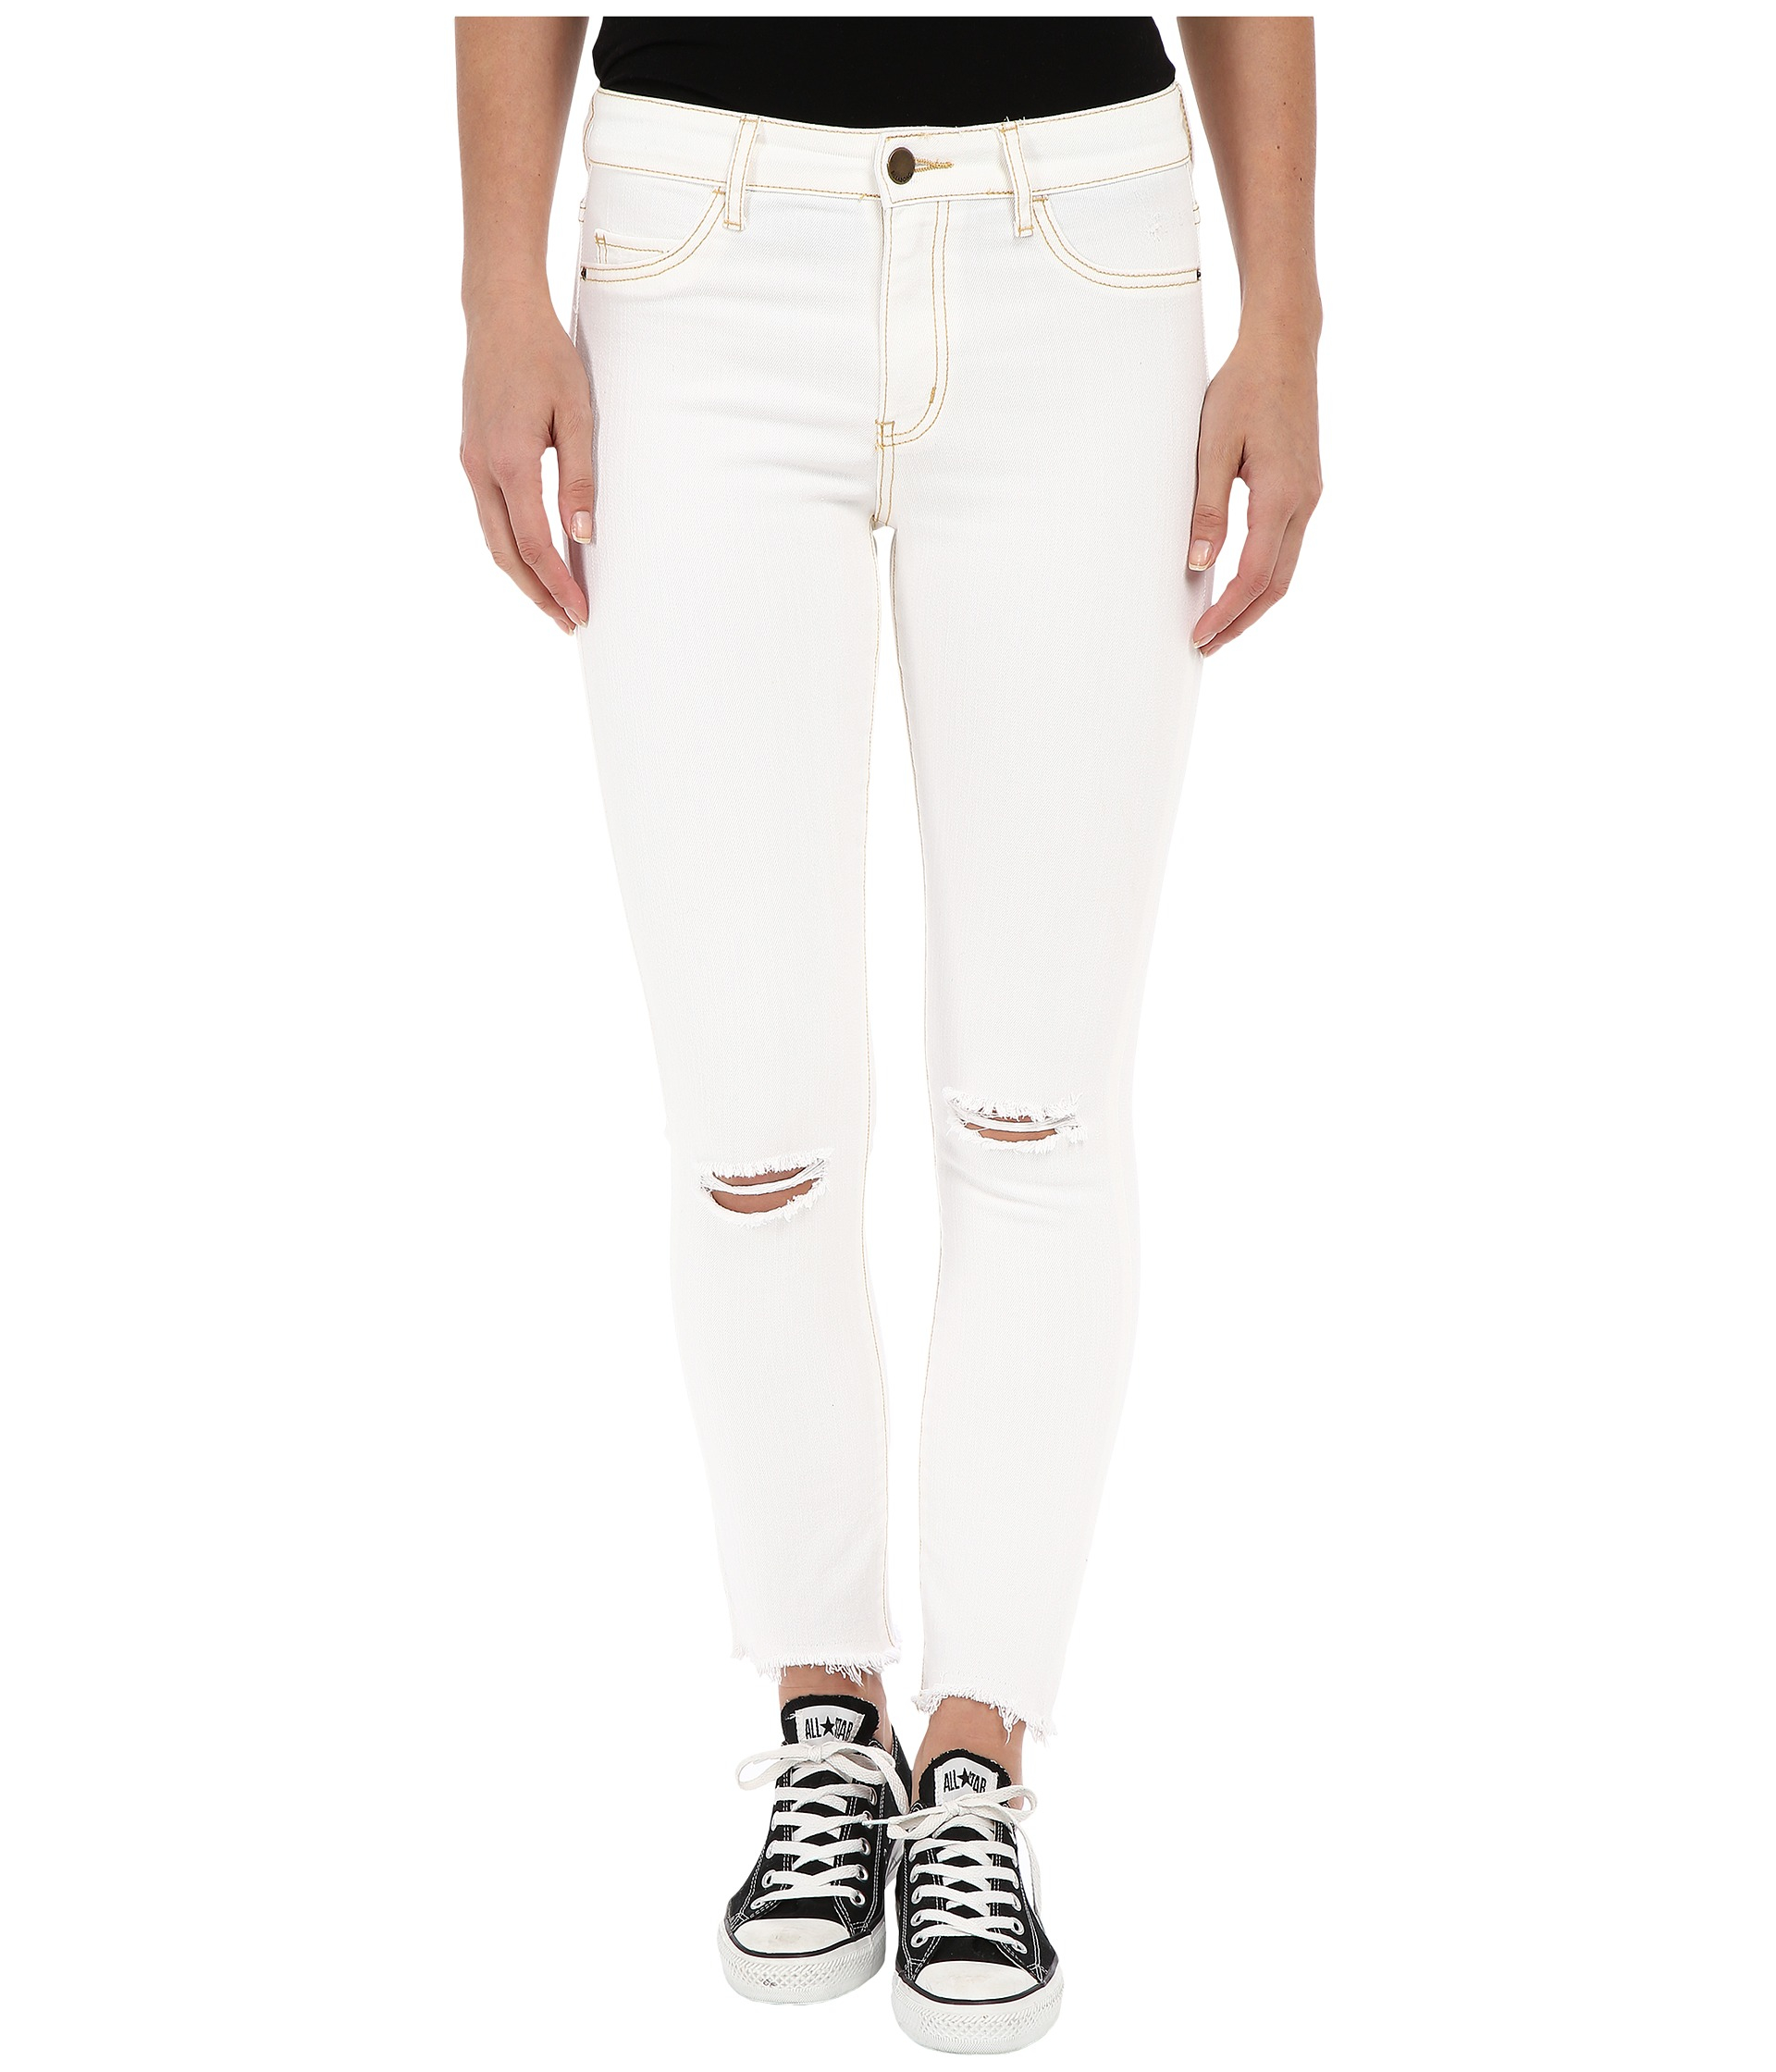 f13646825f747 Gallery. Previously sold at: Zappos · Women's Raw Edged Denim